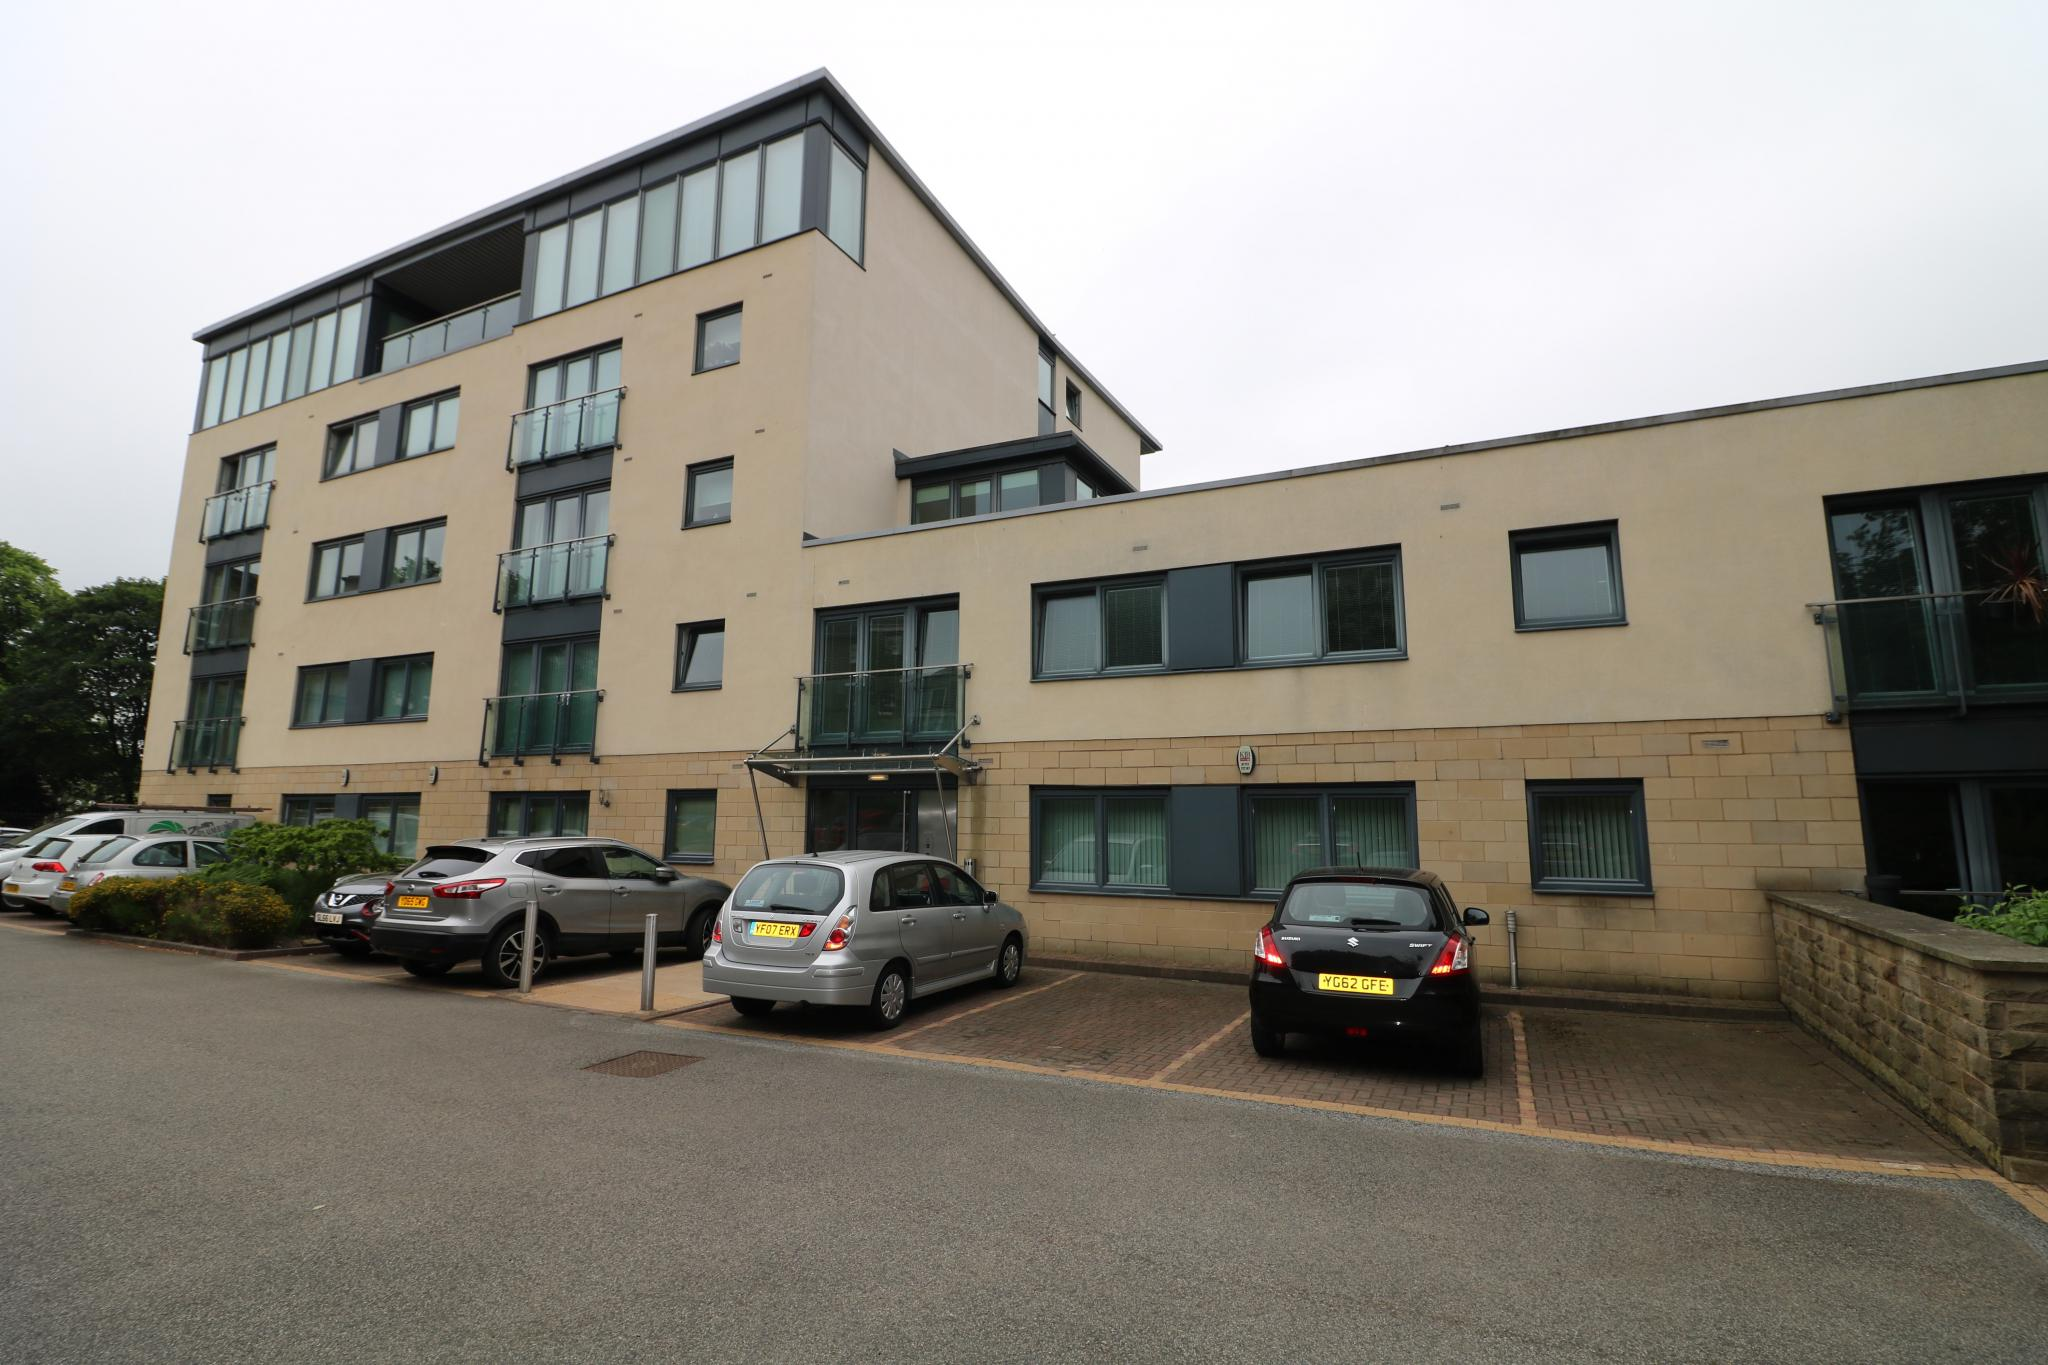 2 Bedroom Apartment Flat/apartment For Sale - Front exterior and car park